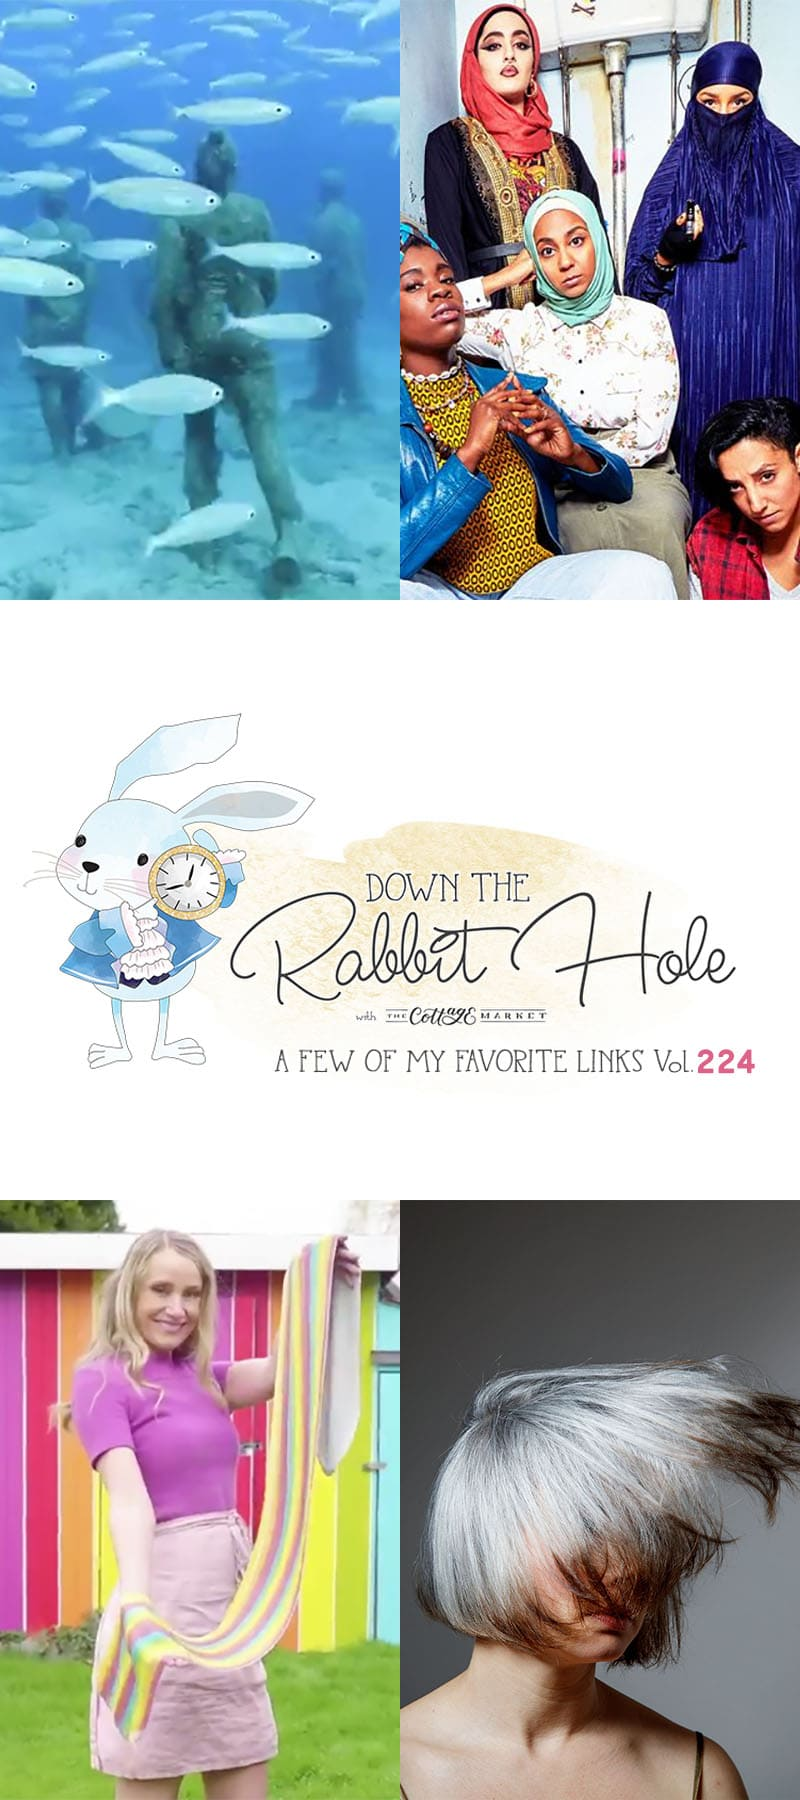 Down the Rabbit Hole Where Fun Links & Pet Rescues Meet. A great place to enjoy interesting links and also help out Pet Rescues all over the world!